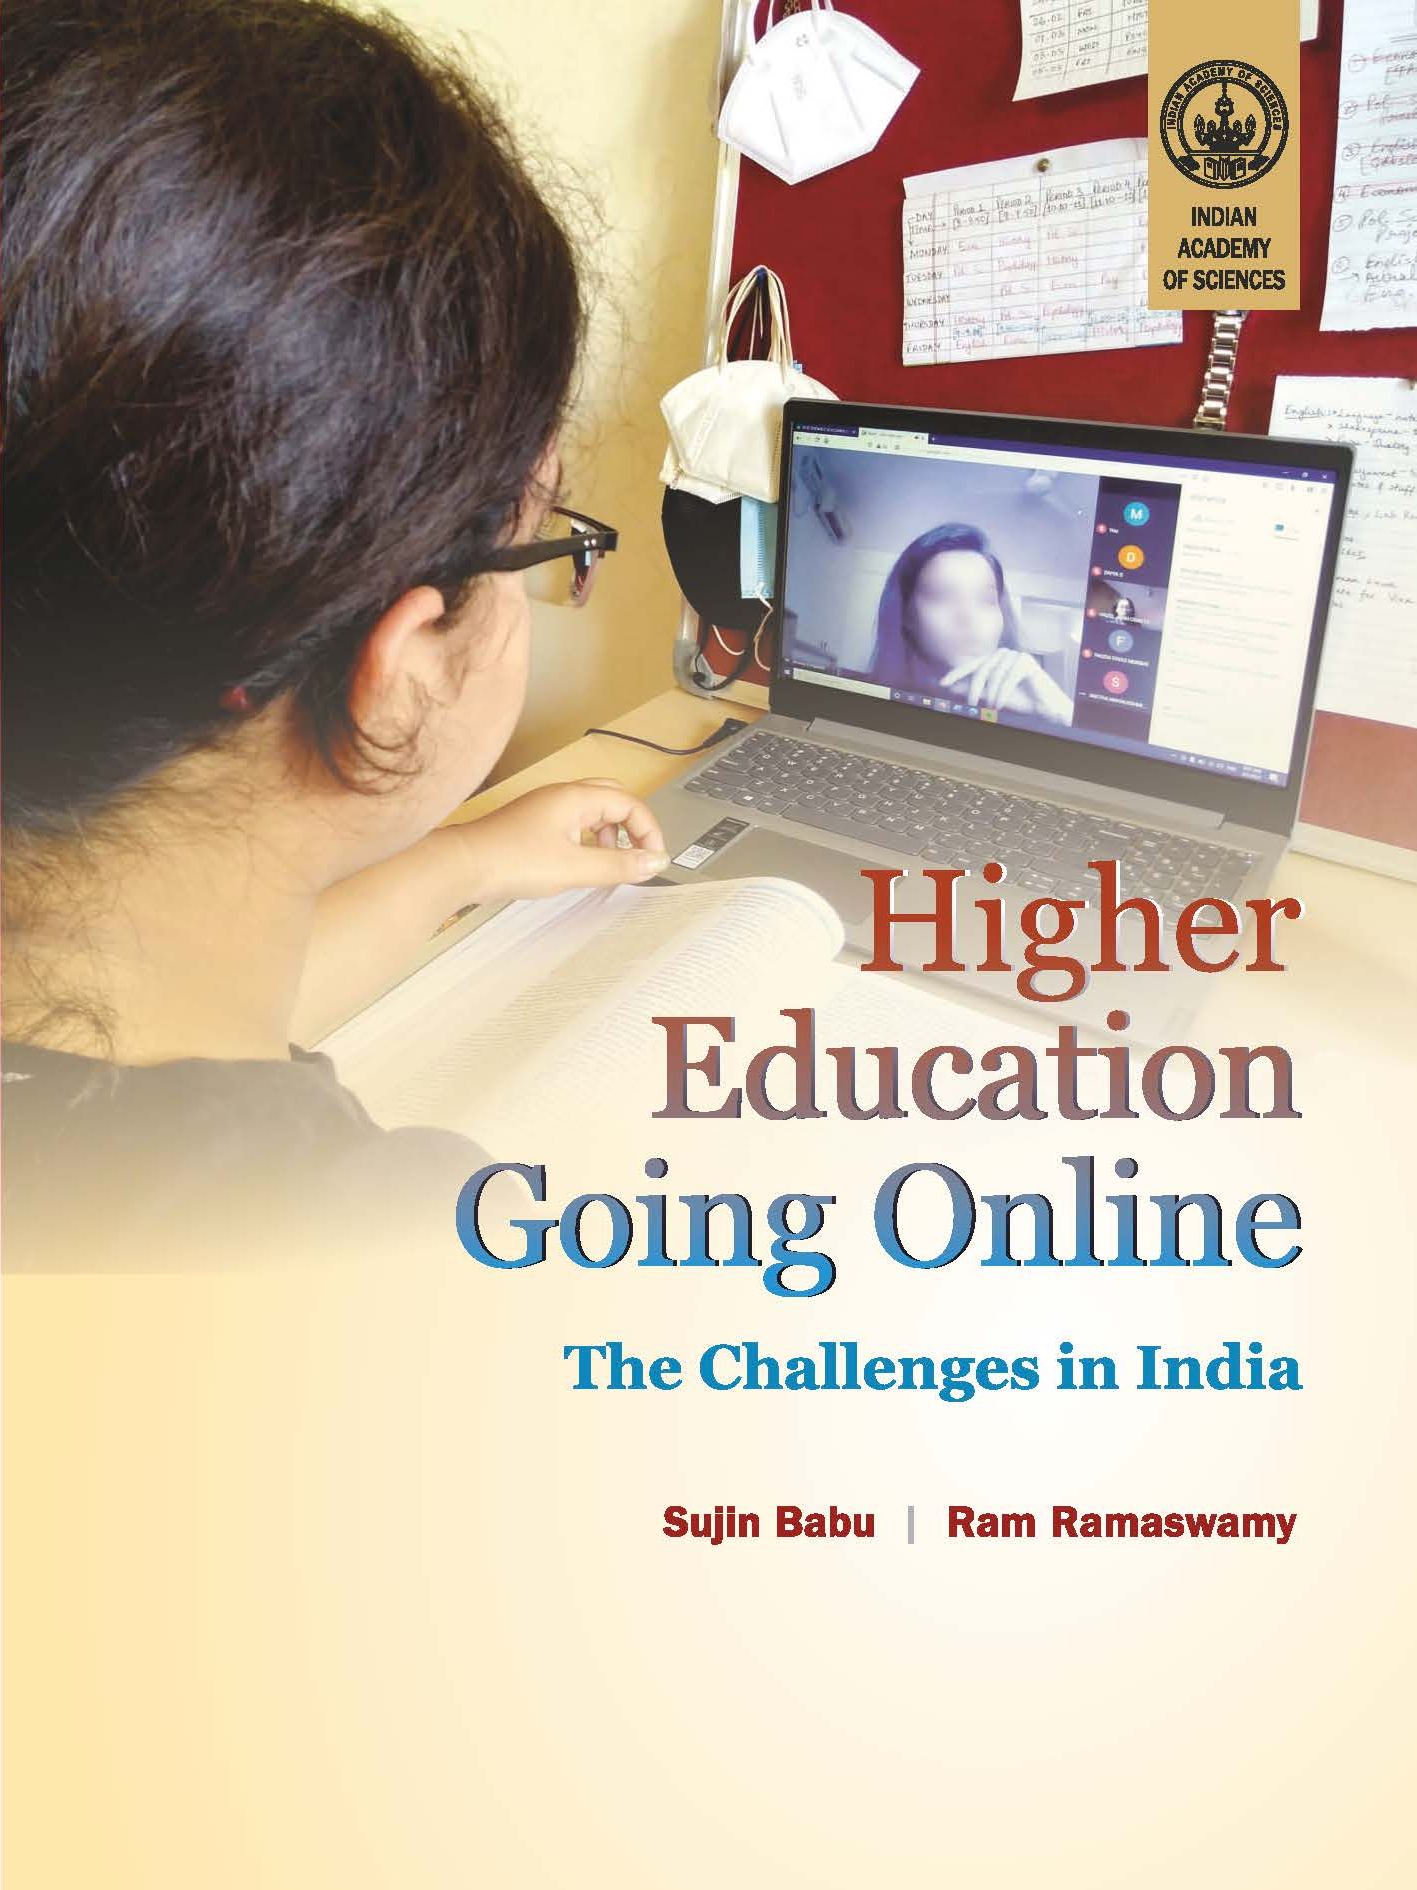 Higher Education Going Online: The Challenges in India